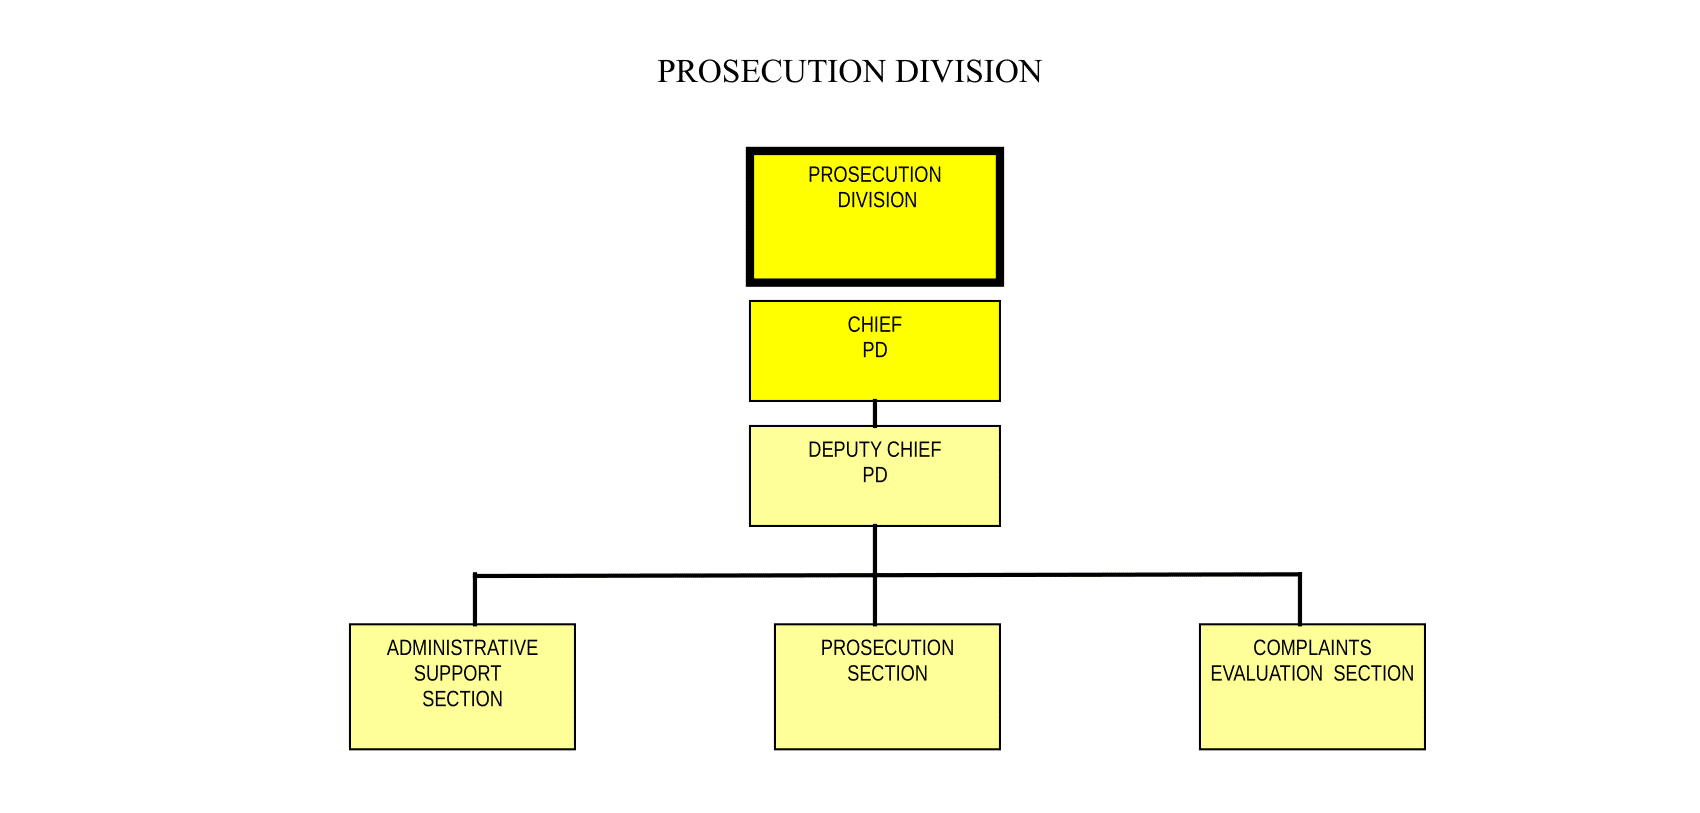 Main functions and tasks of the Prosecutors Office